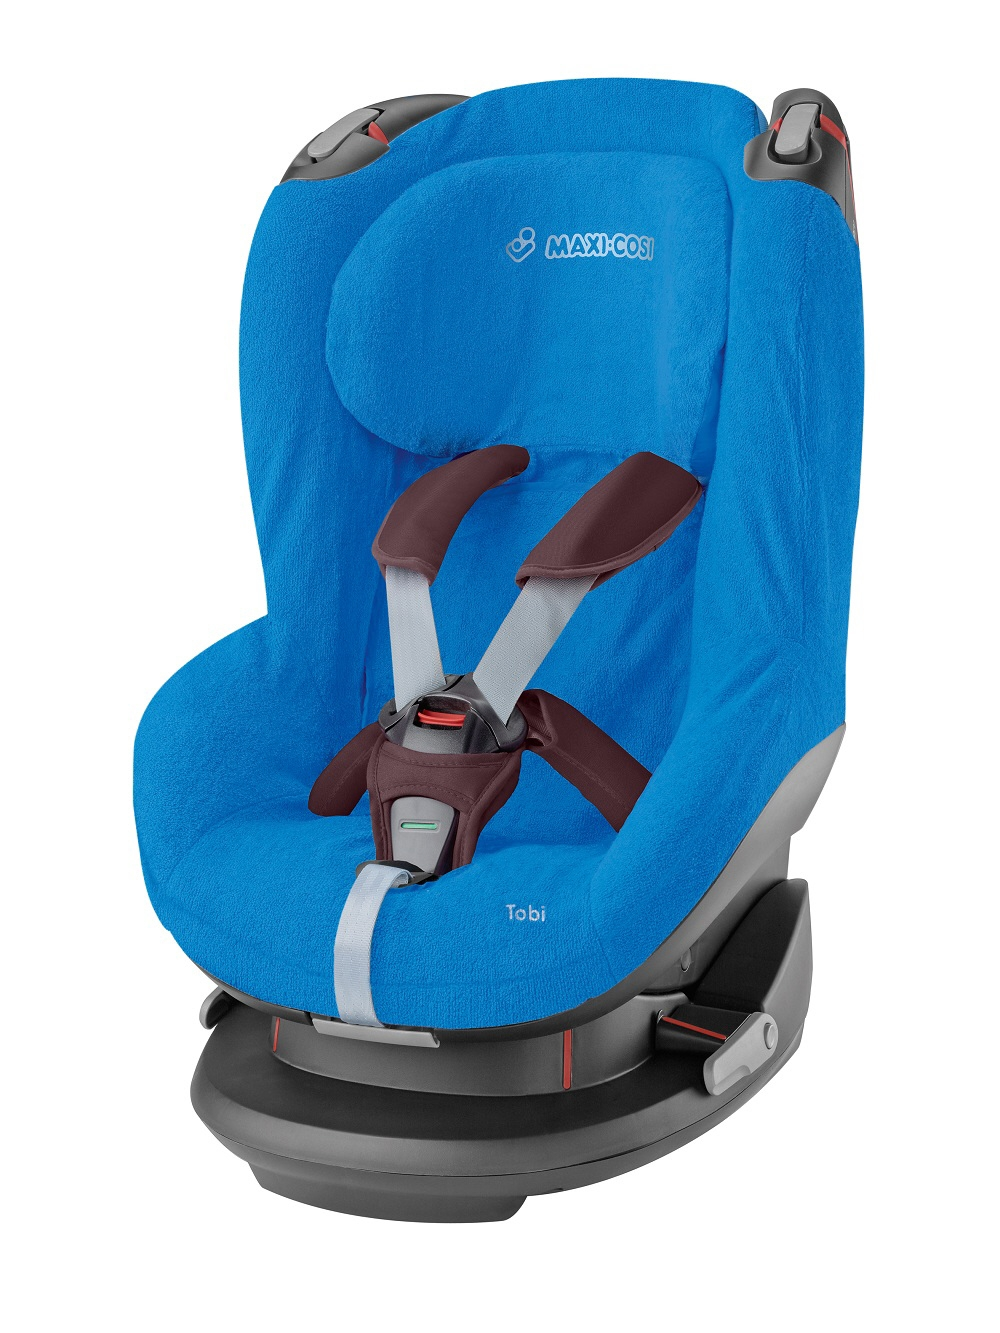 maxi cosi summer cover for child car seat tobi blue buy at kidsroom car seats car seat. Black Bedroom Furniture Sets. Home Design Ideas